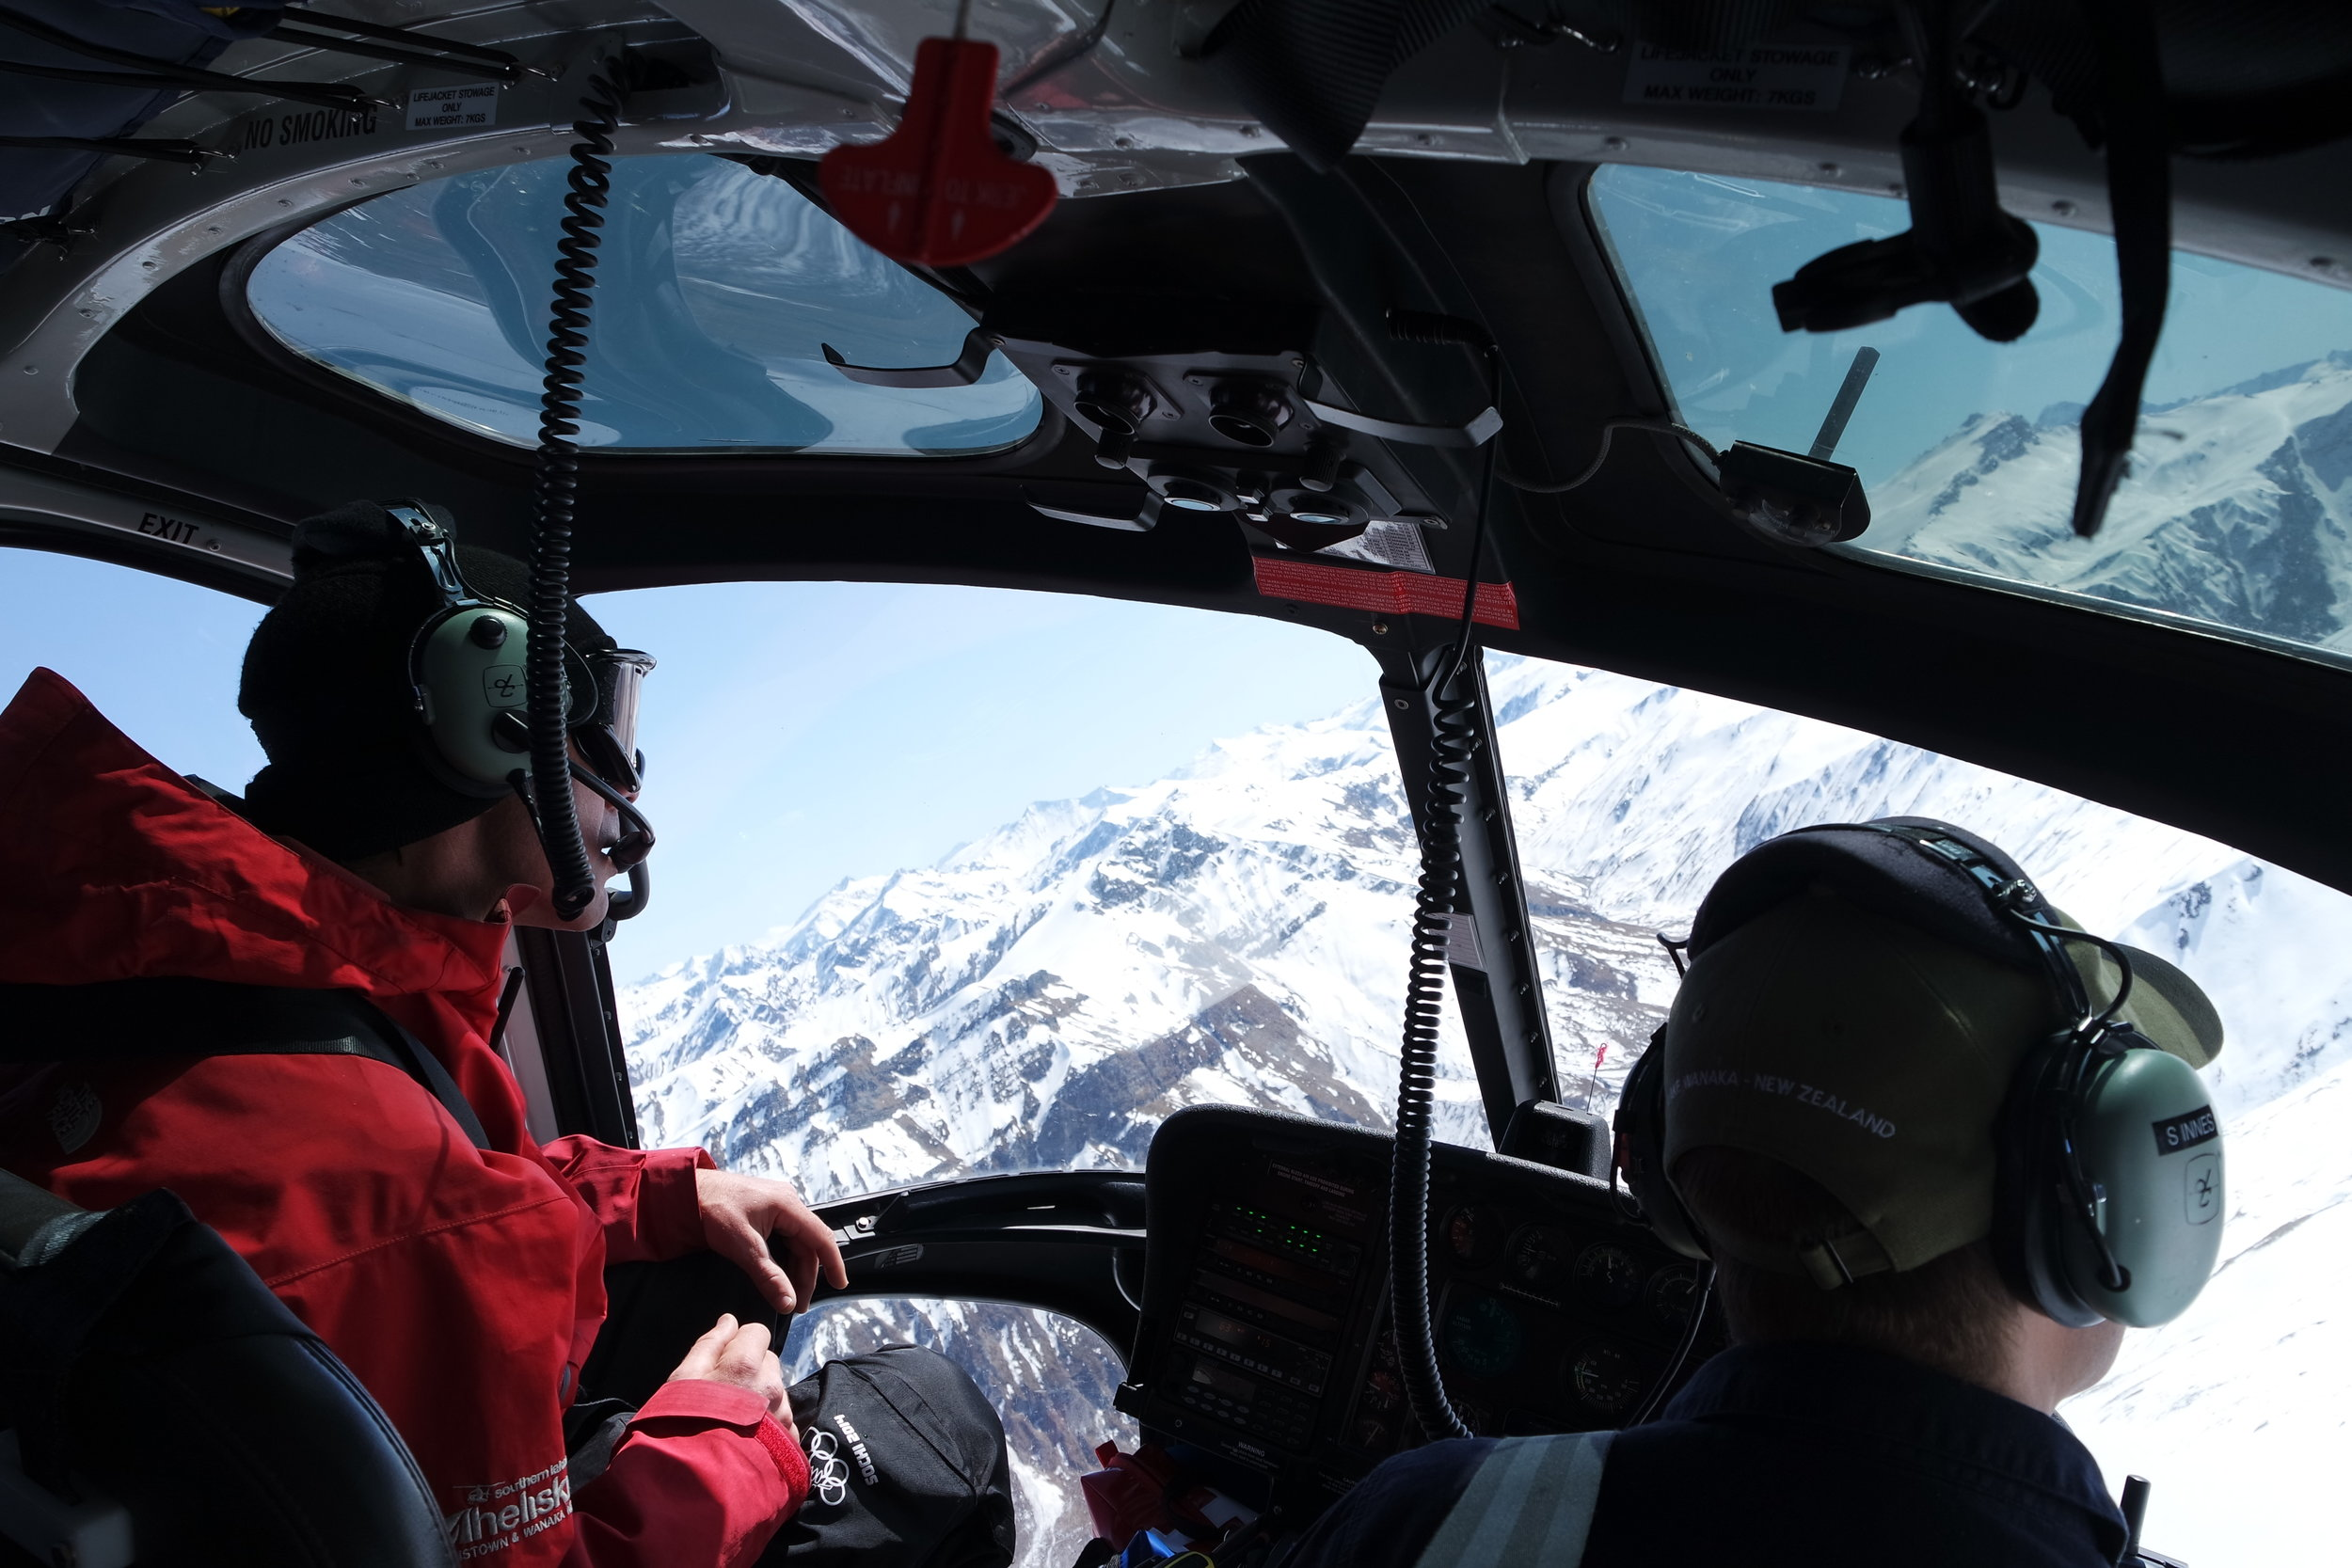 Tom's happy place scouting lines with Southern Lakes Heliski